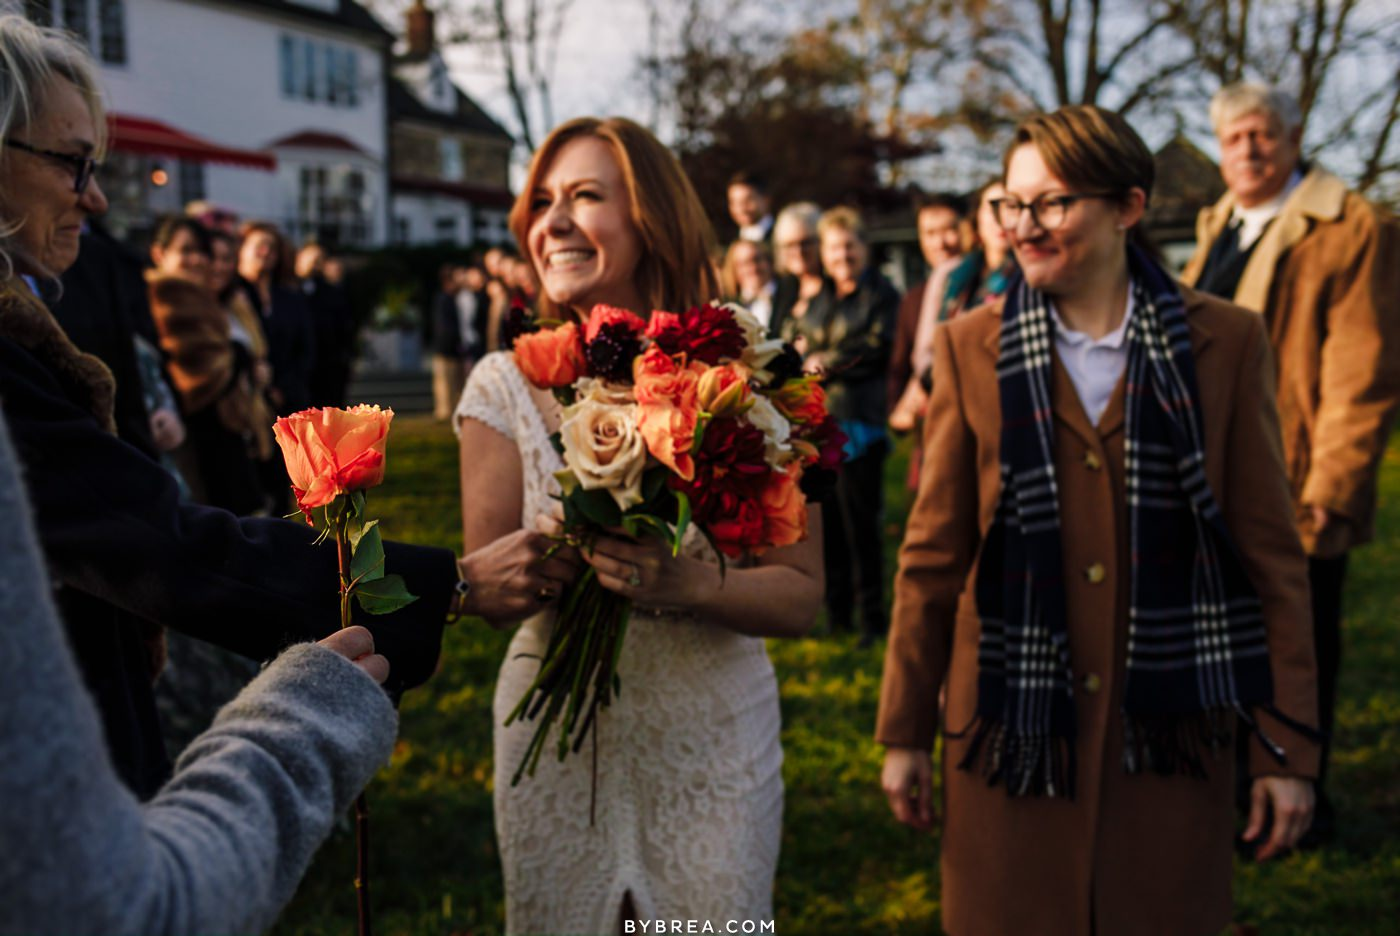 LGBTQ wedding candid of brides walking down the aisle during ceremony